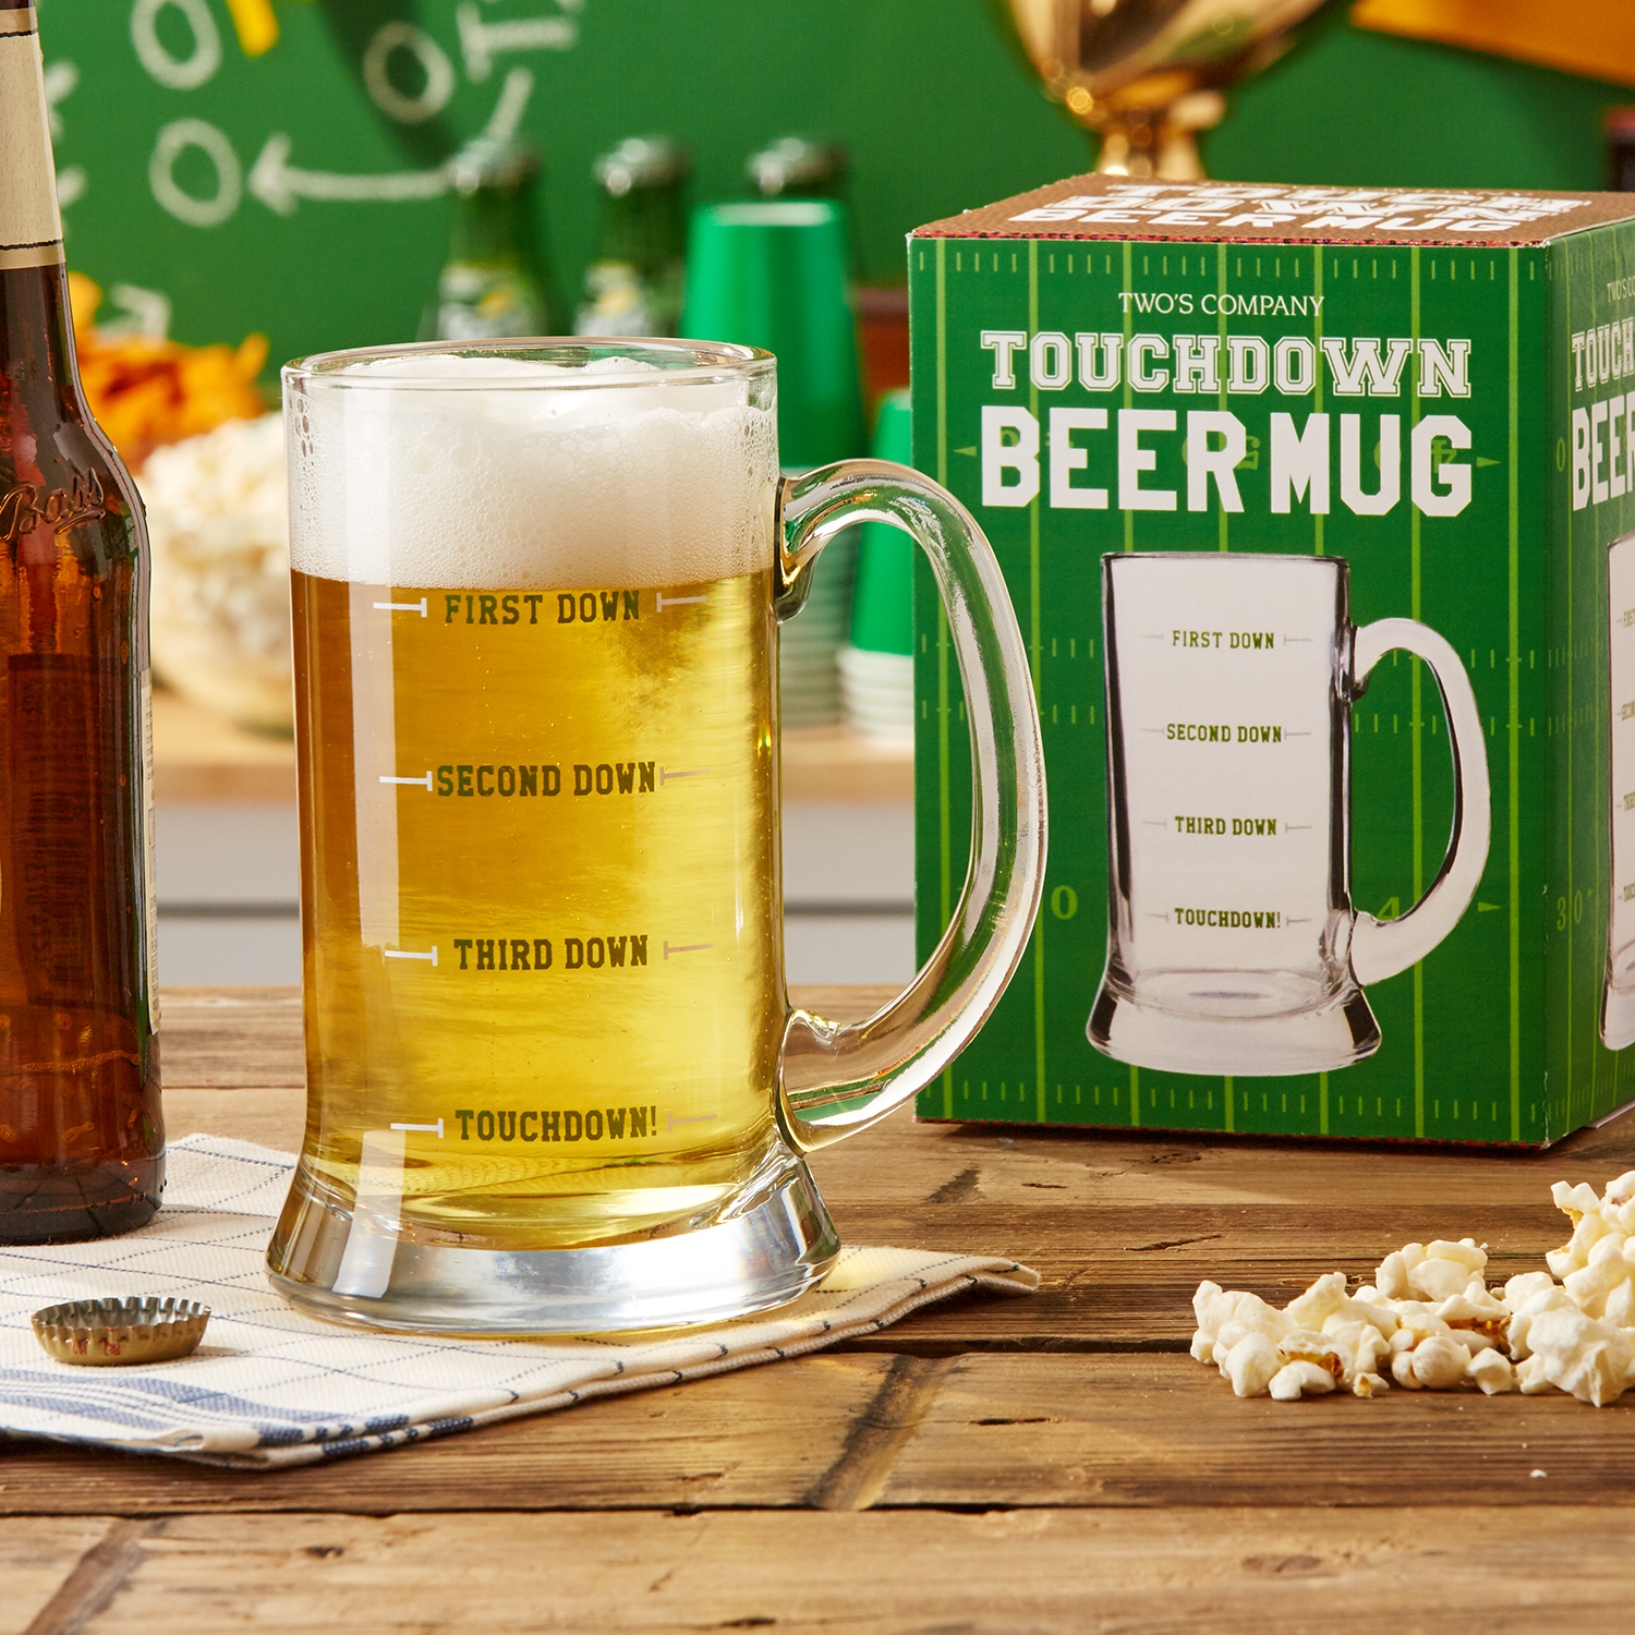 15oz. Touchdown Beer Mug Only.